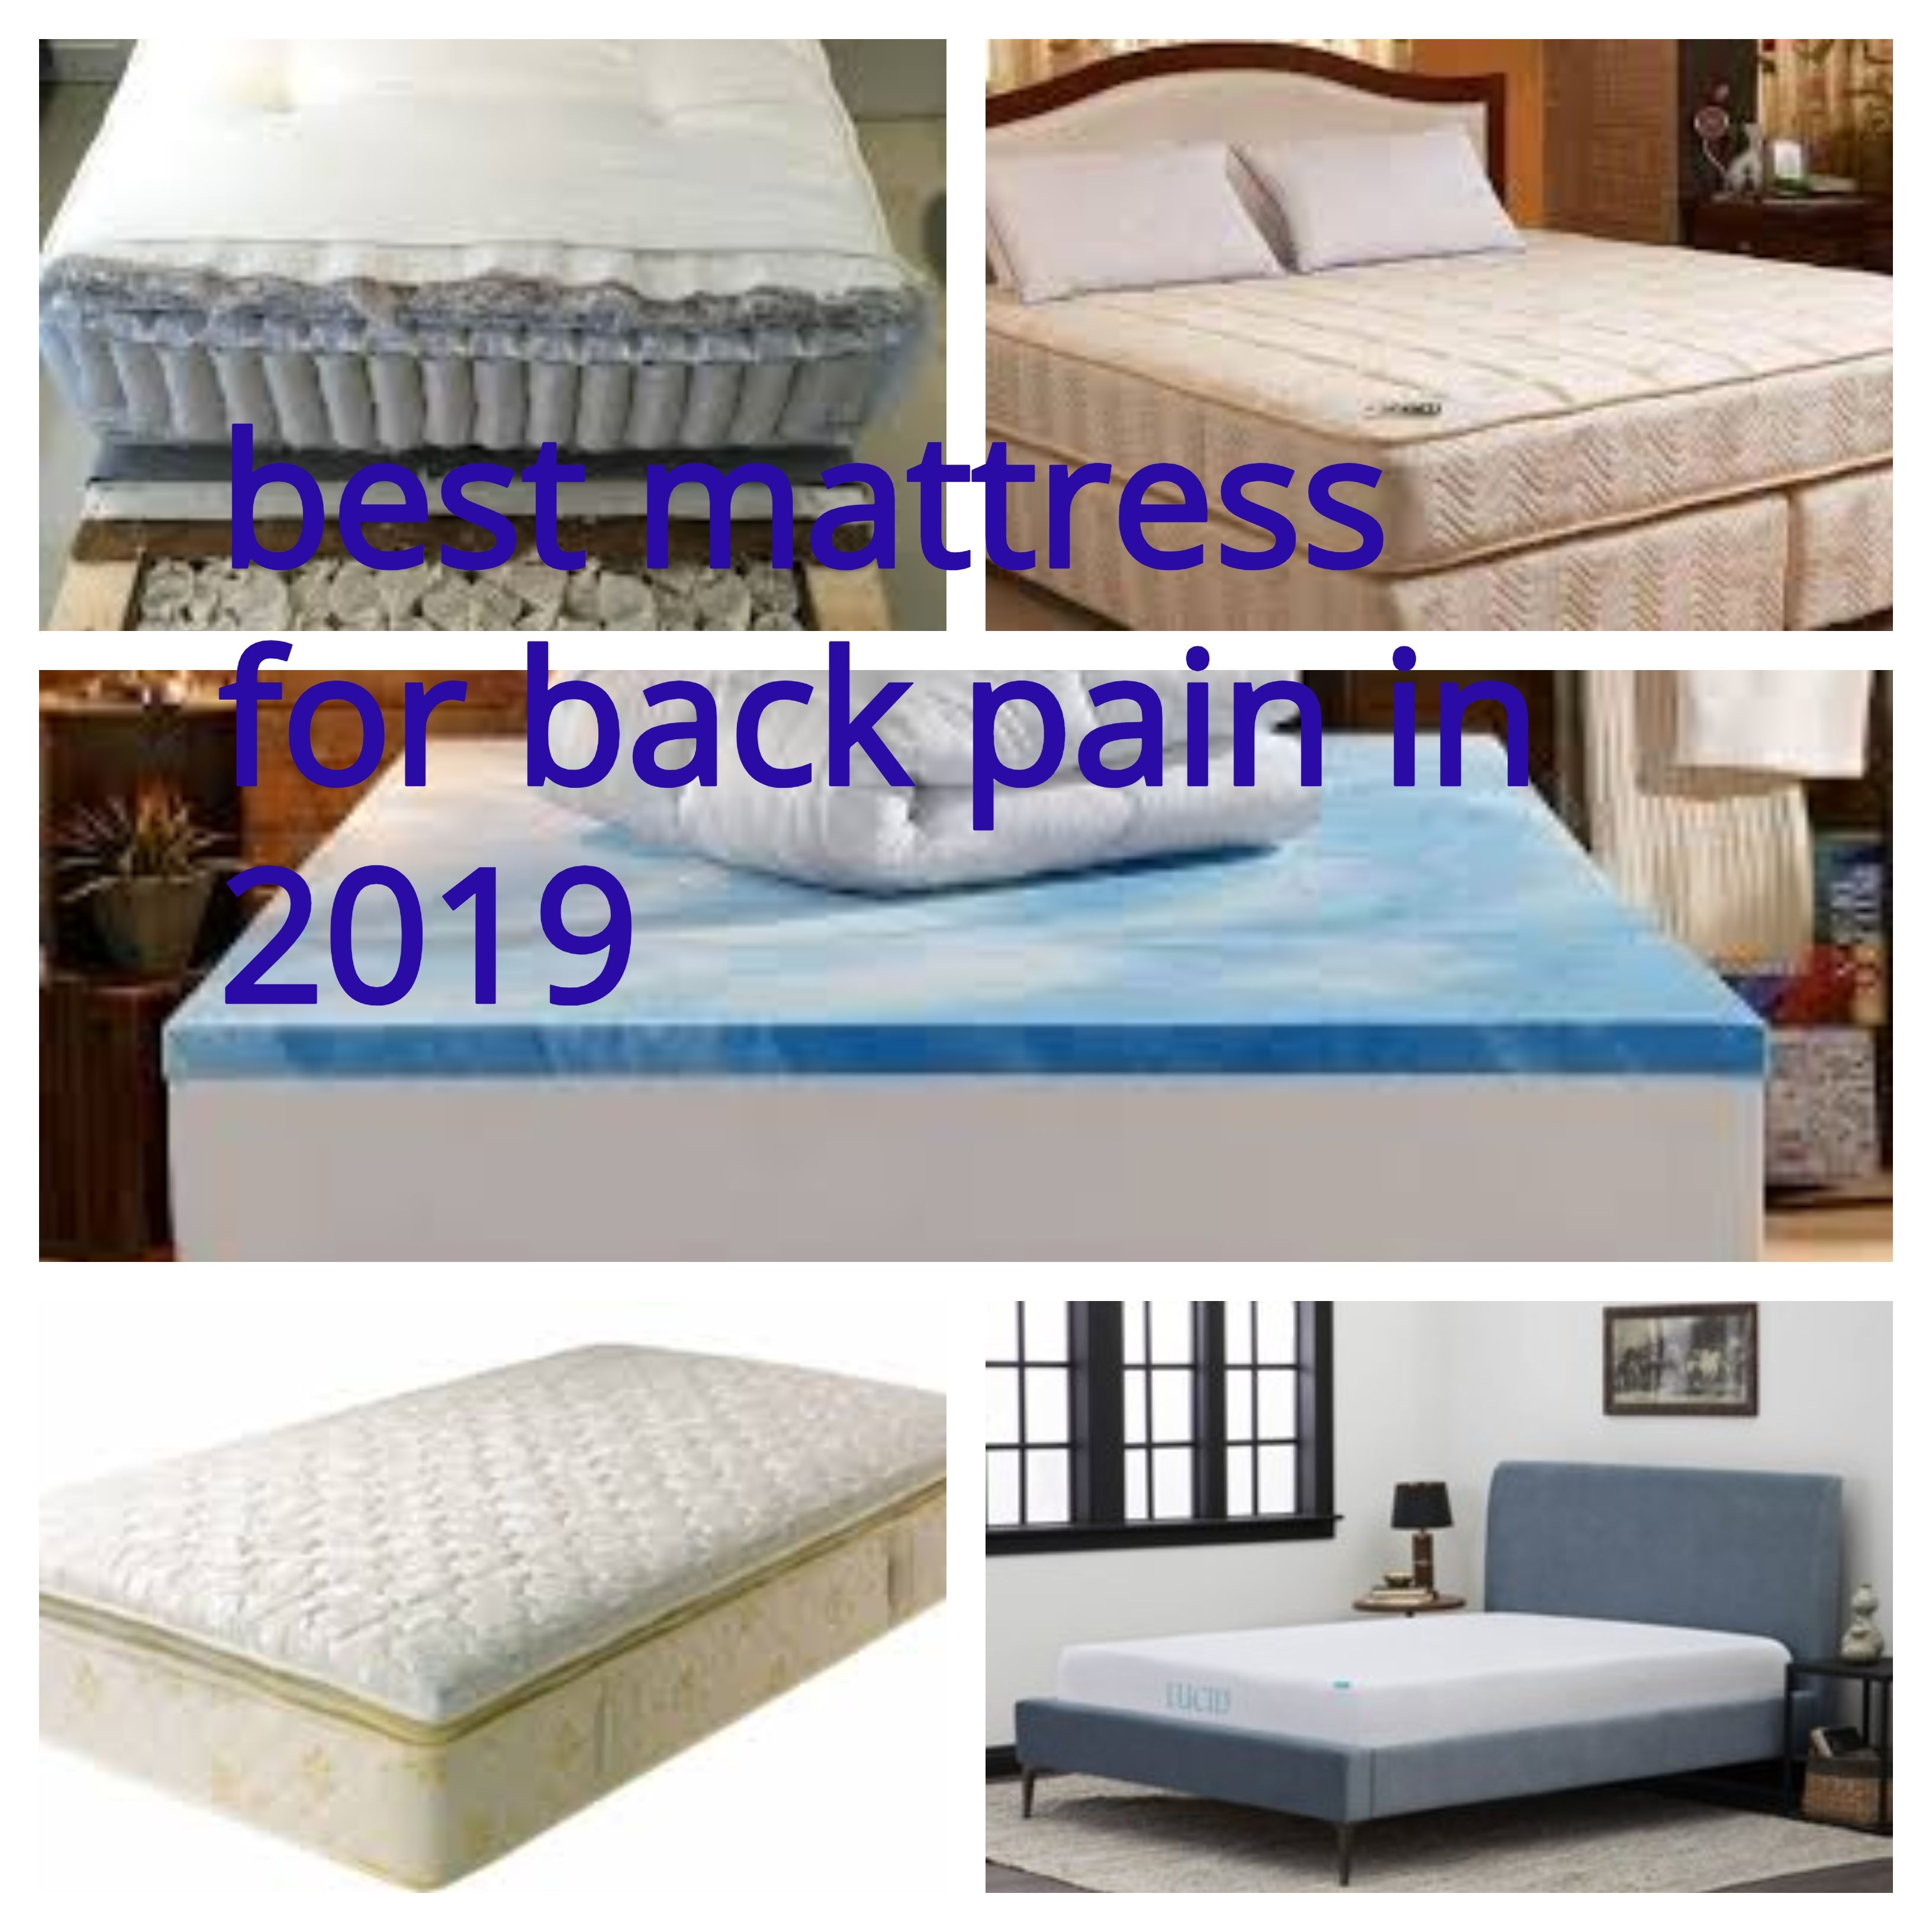 What Kind Of Mattress Is Good For Back Pain Today We Will Share The Best Mattresses For Back Pain In 2019